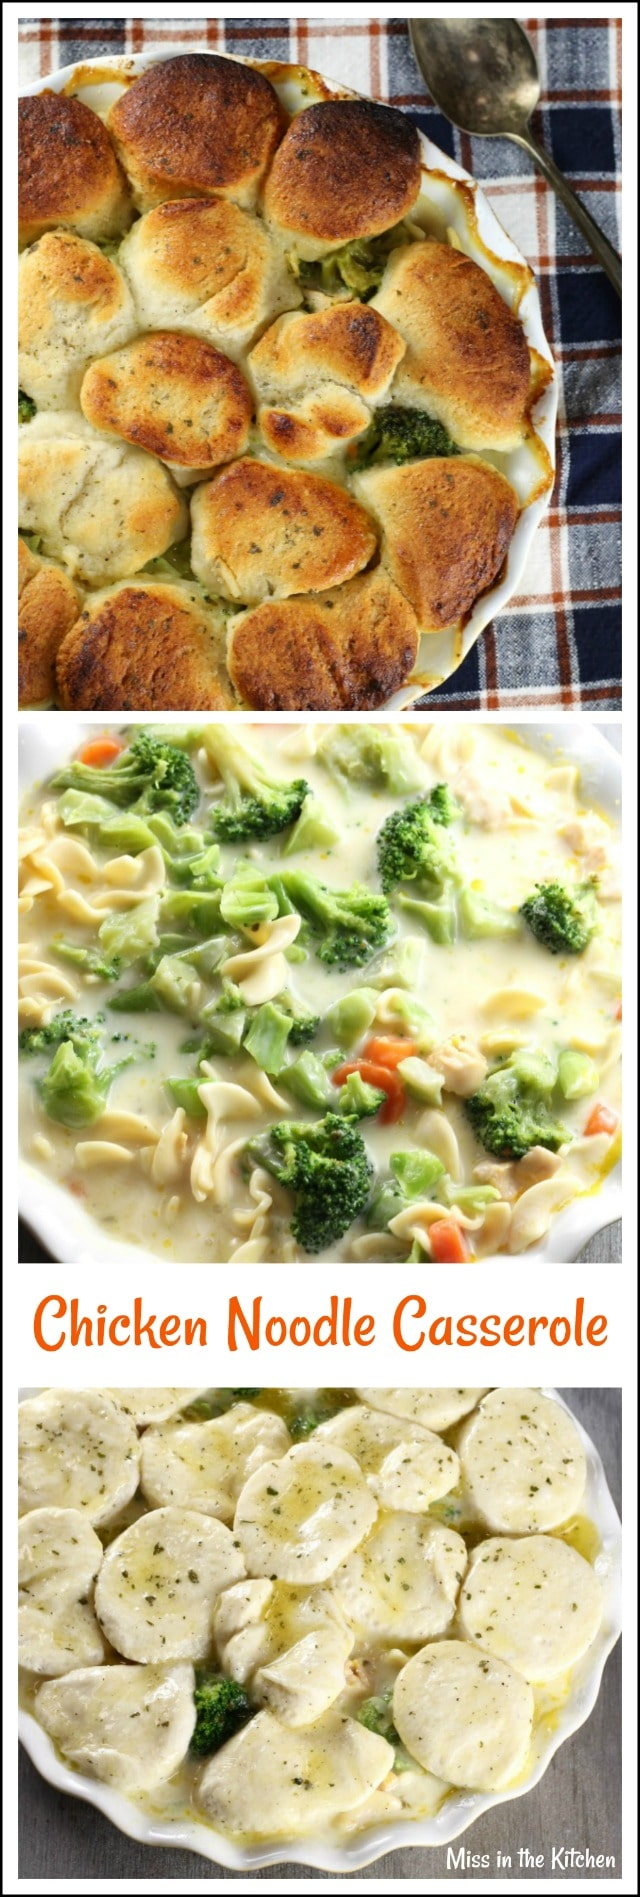 Chicken Noodle Casserole Recipe from MissintheKitchen.com #dinner #easydinner #ad